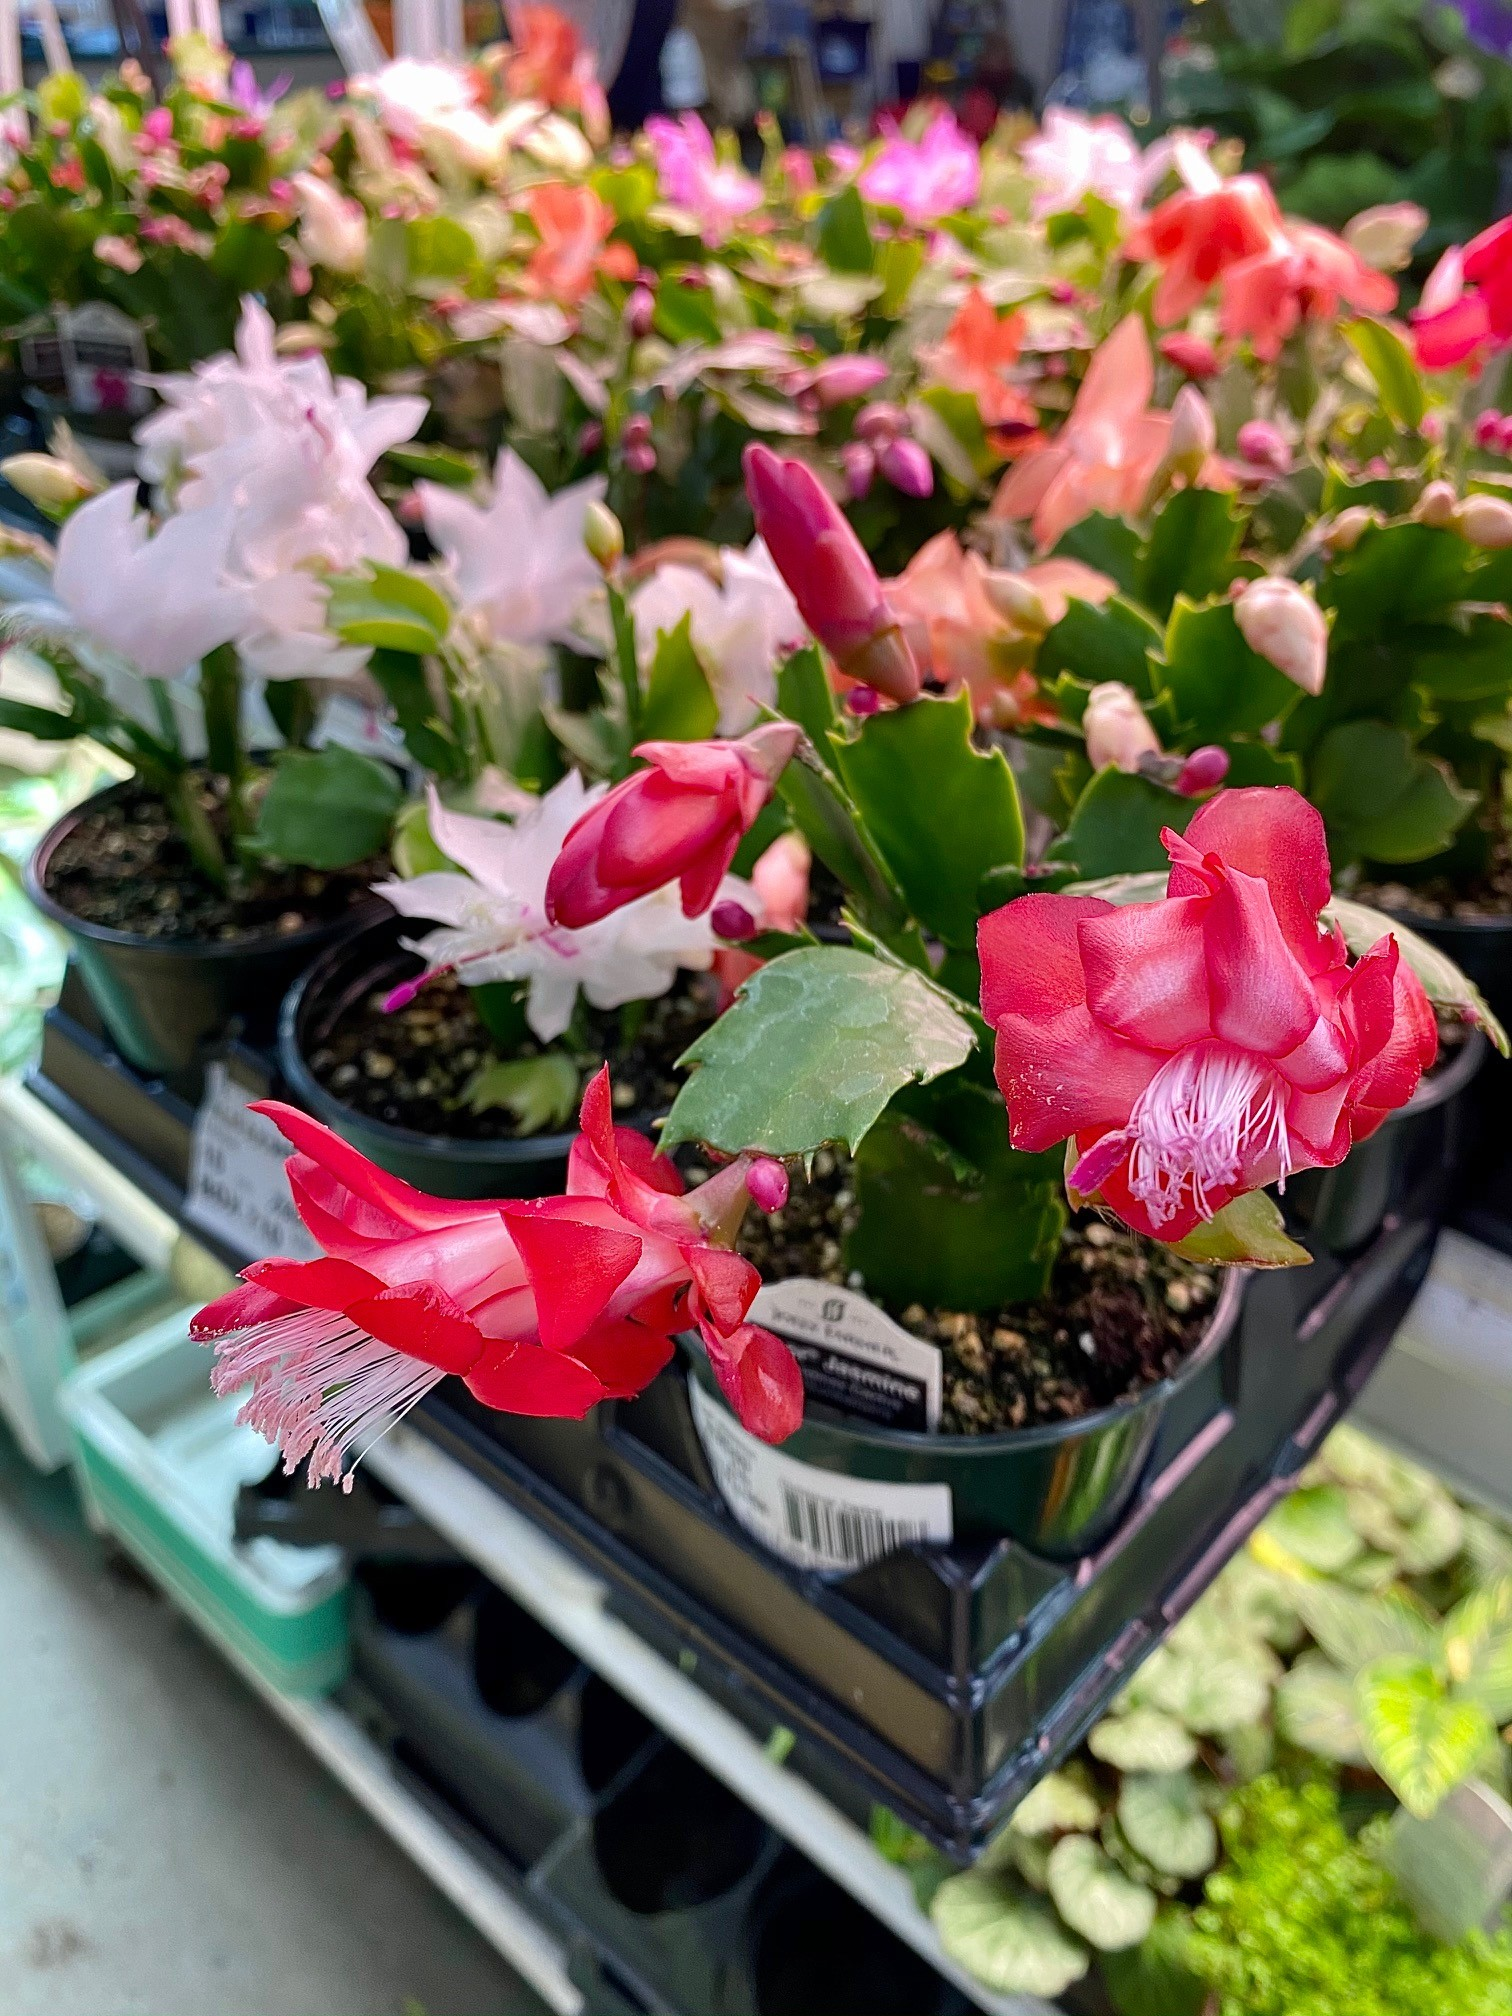 How to Care for Holiday Plants